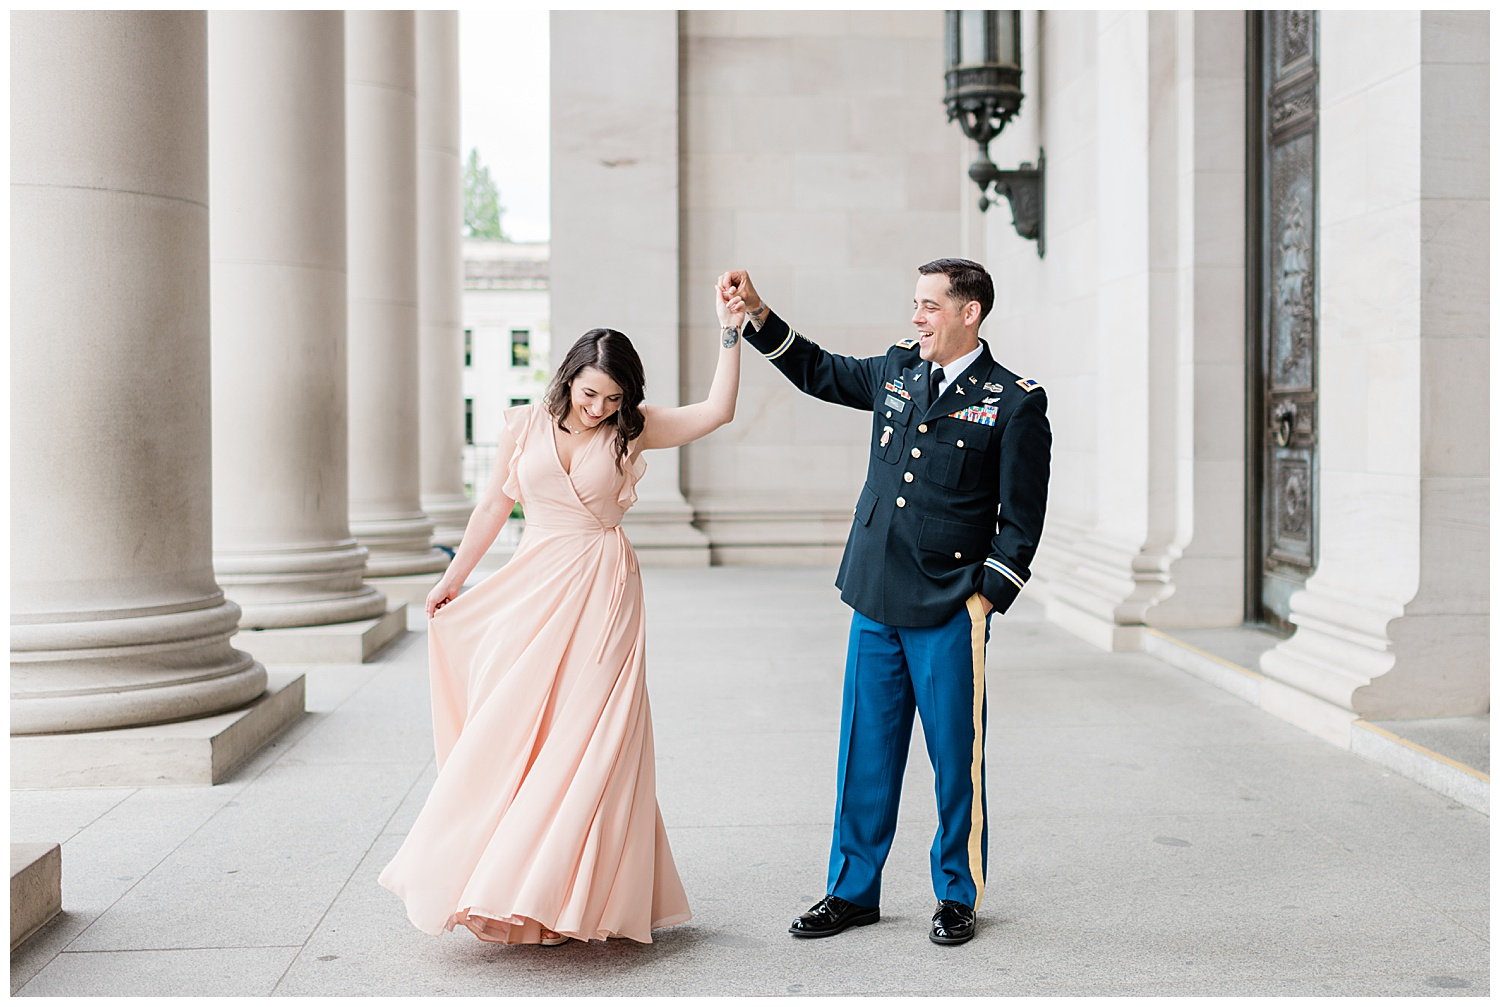 Timeless Newlywed Photos | Janet Lin Photography